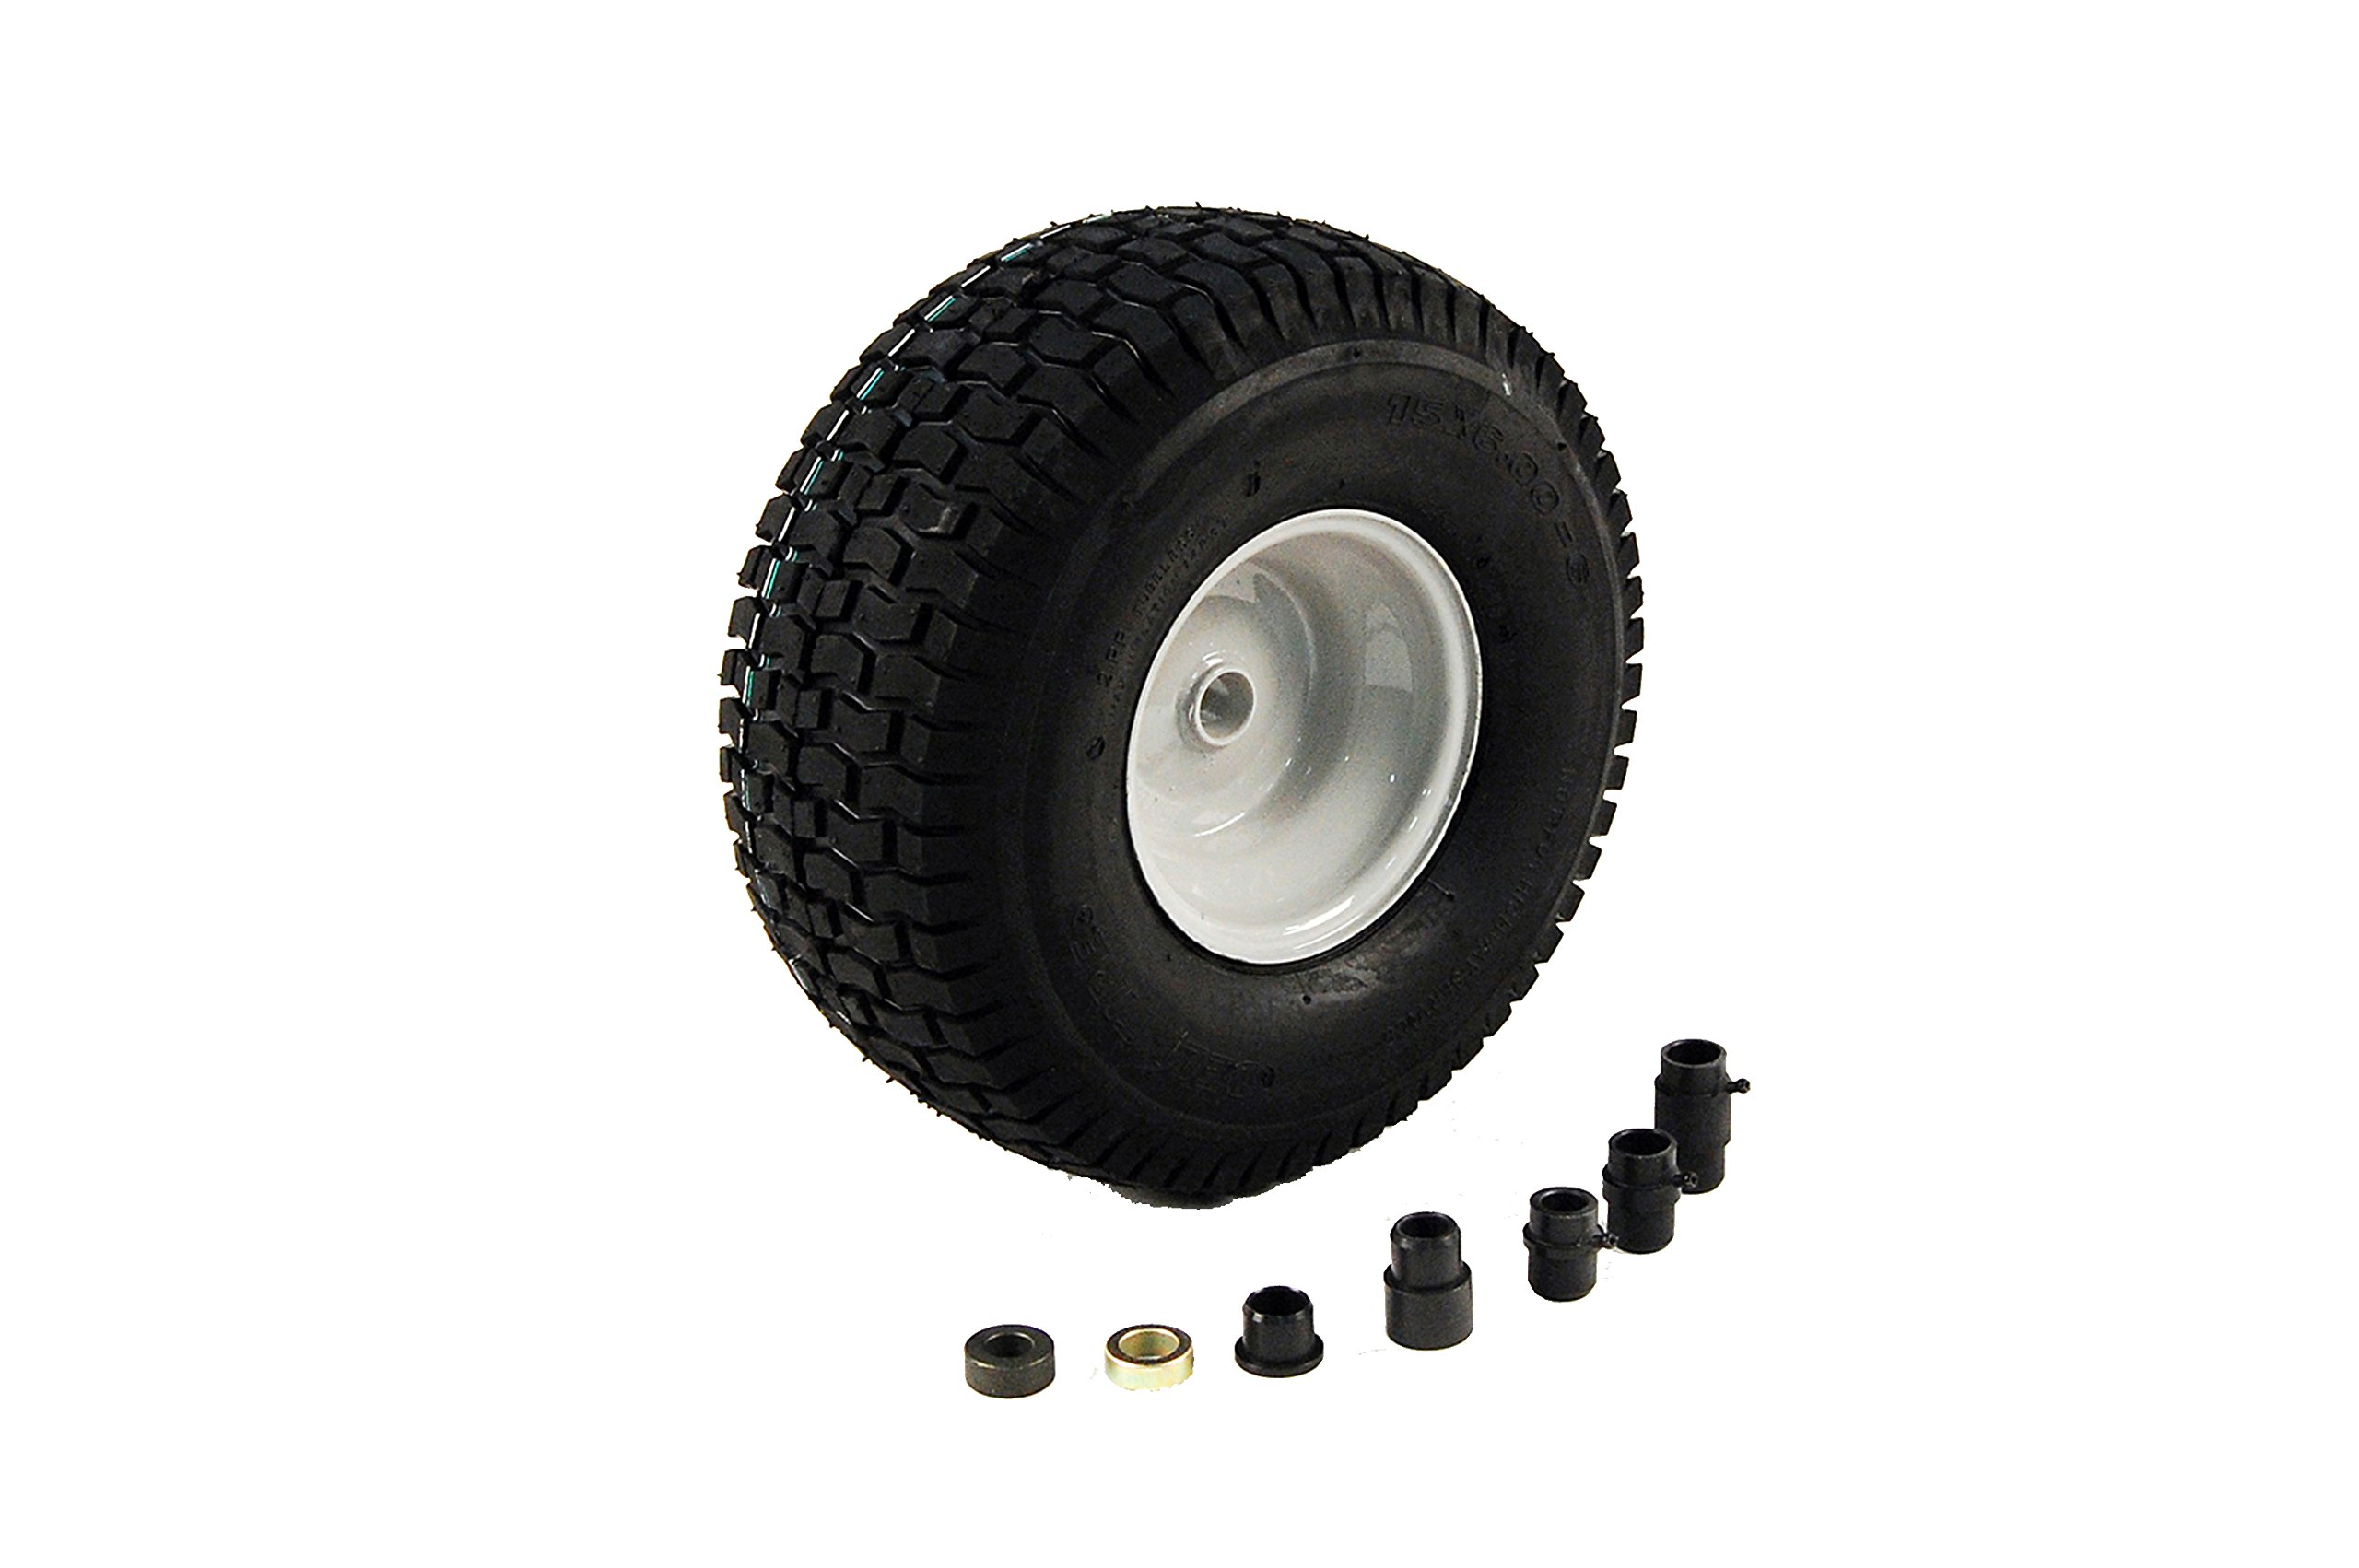 Arnold 490-325-0012 Universal 15-Inch Lawn Mower Front Wheel by Arnold